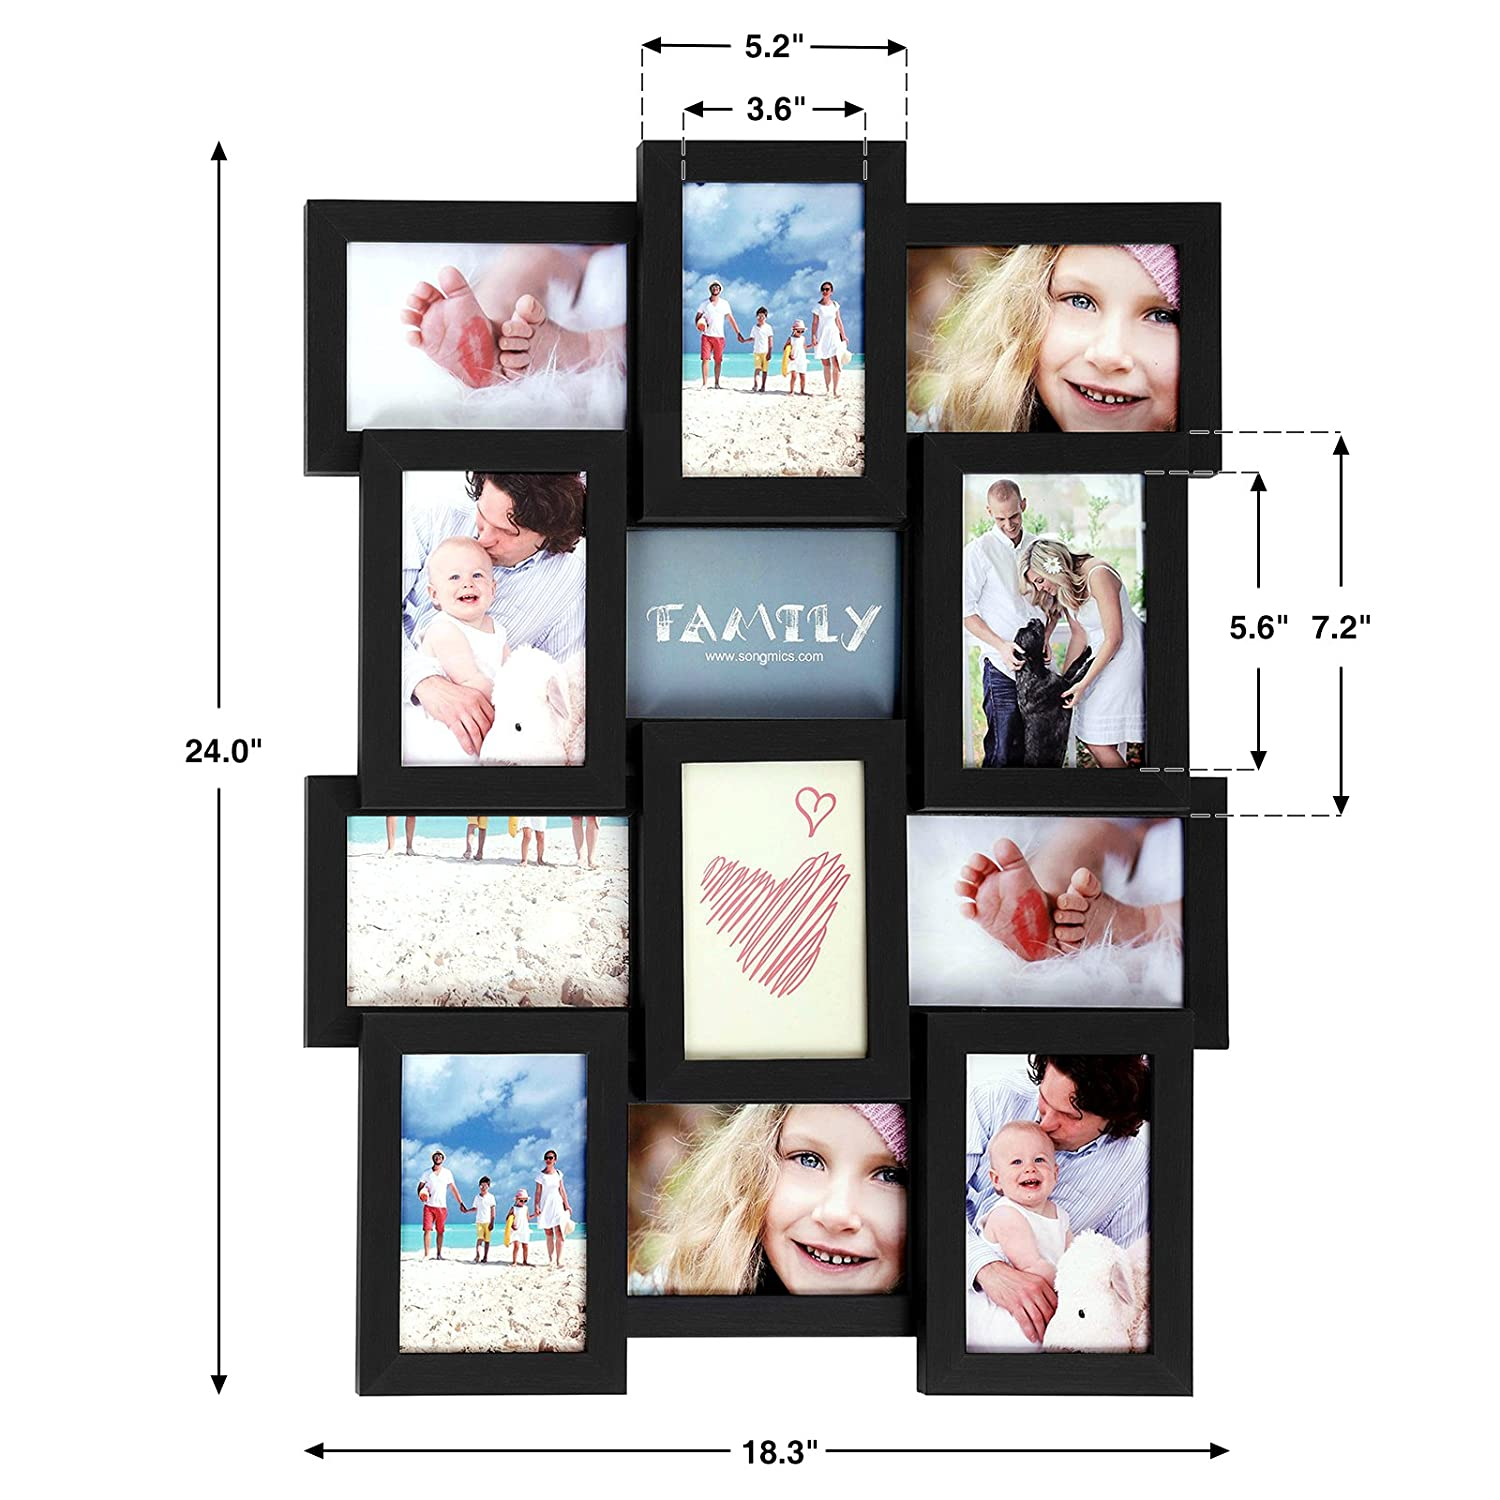 Assembly Required SONGMICS Picture Frames for 12 Photos in 4 x 6 Collage Multiple Photos Glass Front Black Wooden Grain URPF26BK